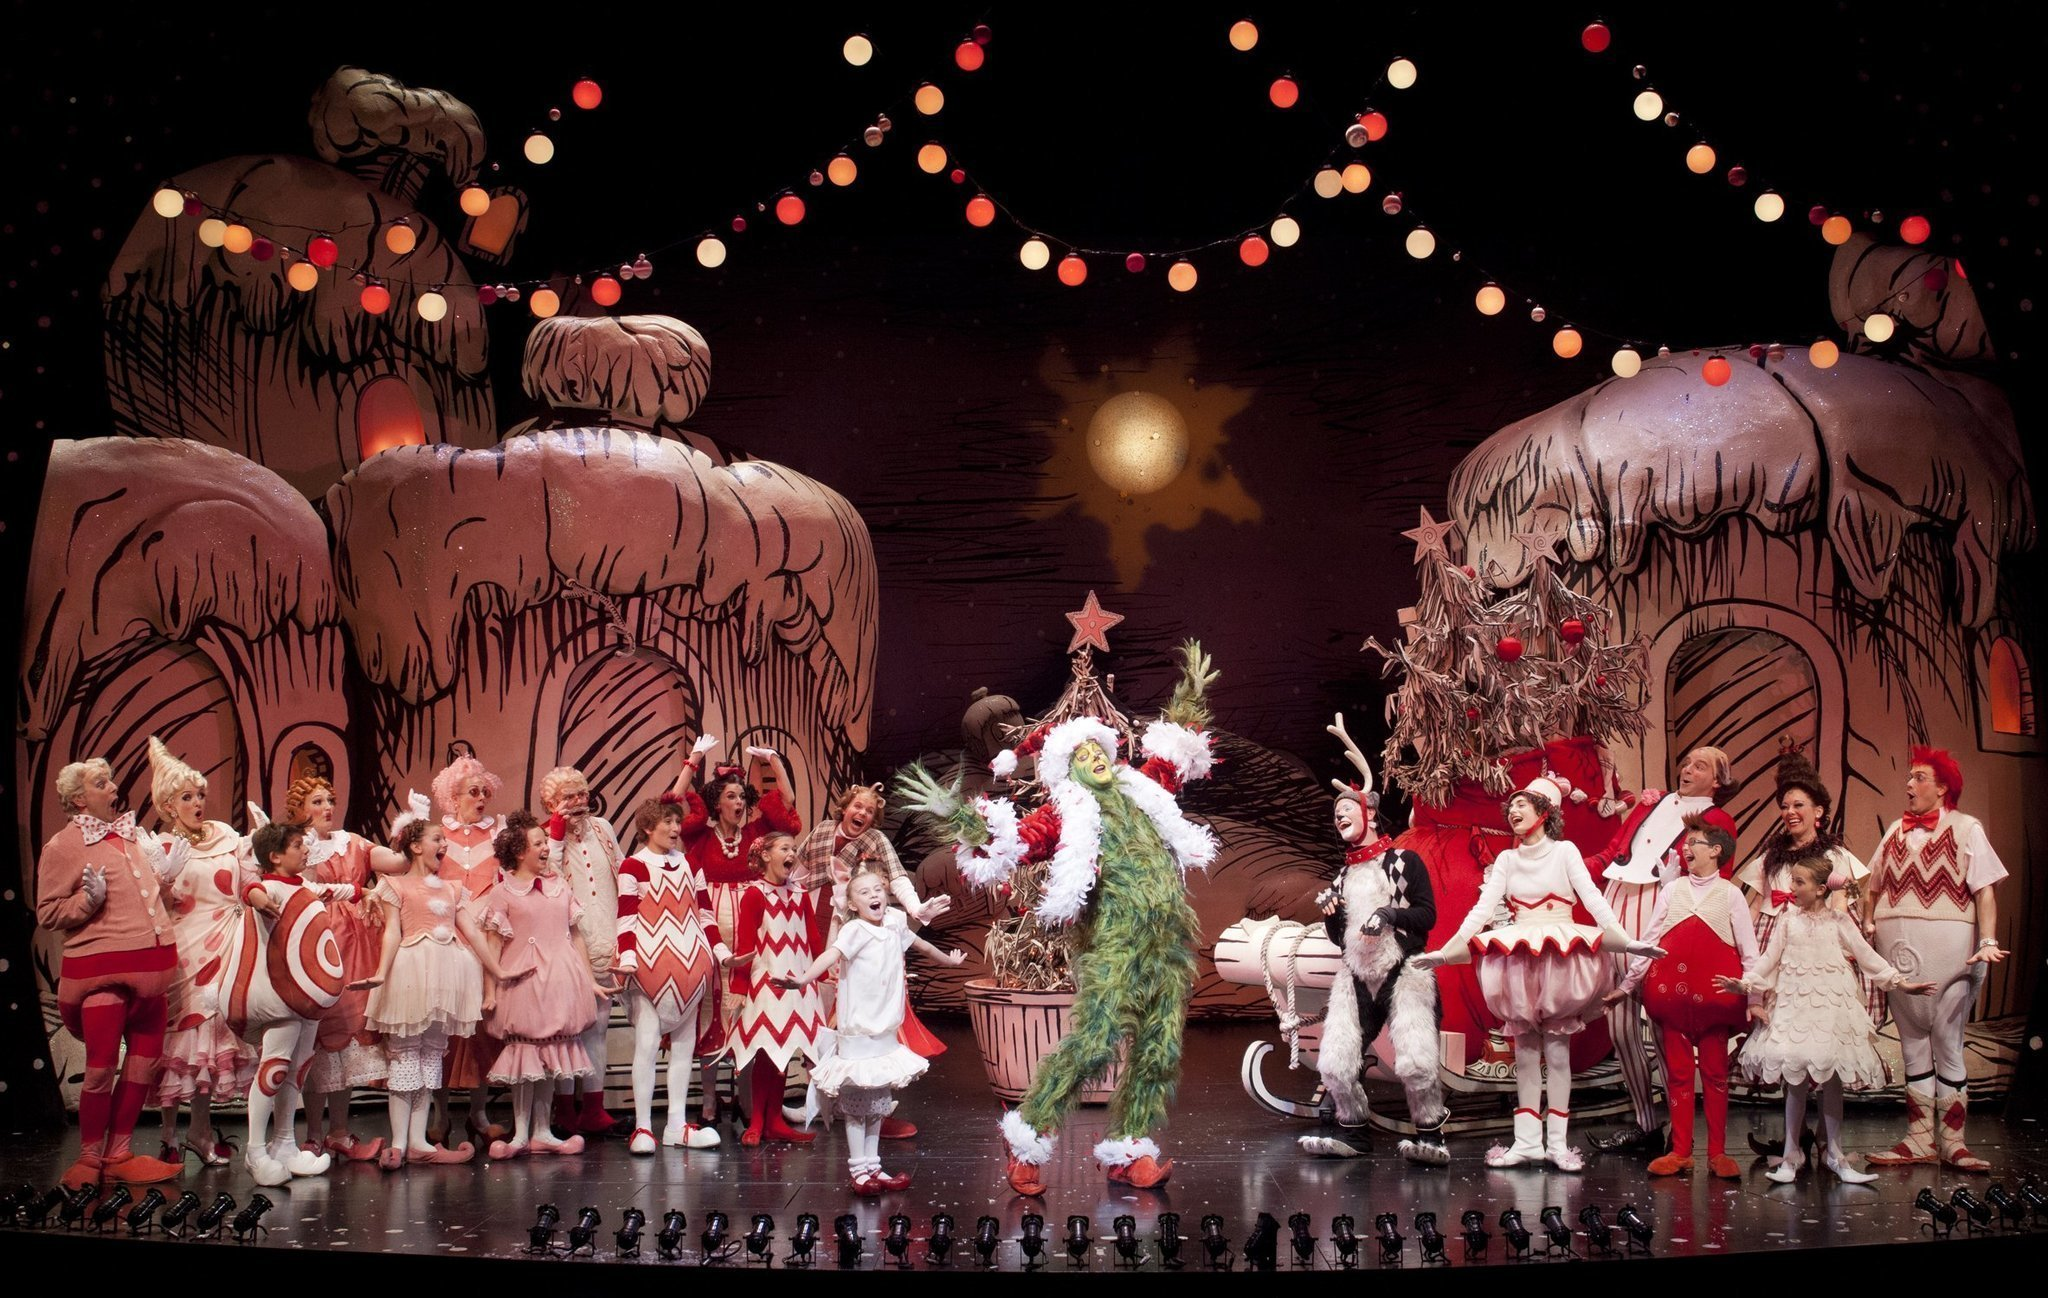 globe rolls out green carpet for grinch the san diego union tribune - Cast Of How The Grinch Stole Christmas